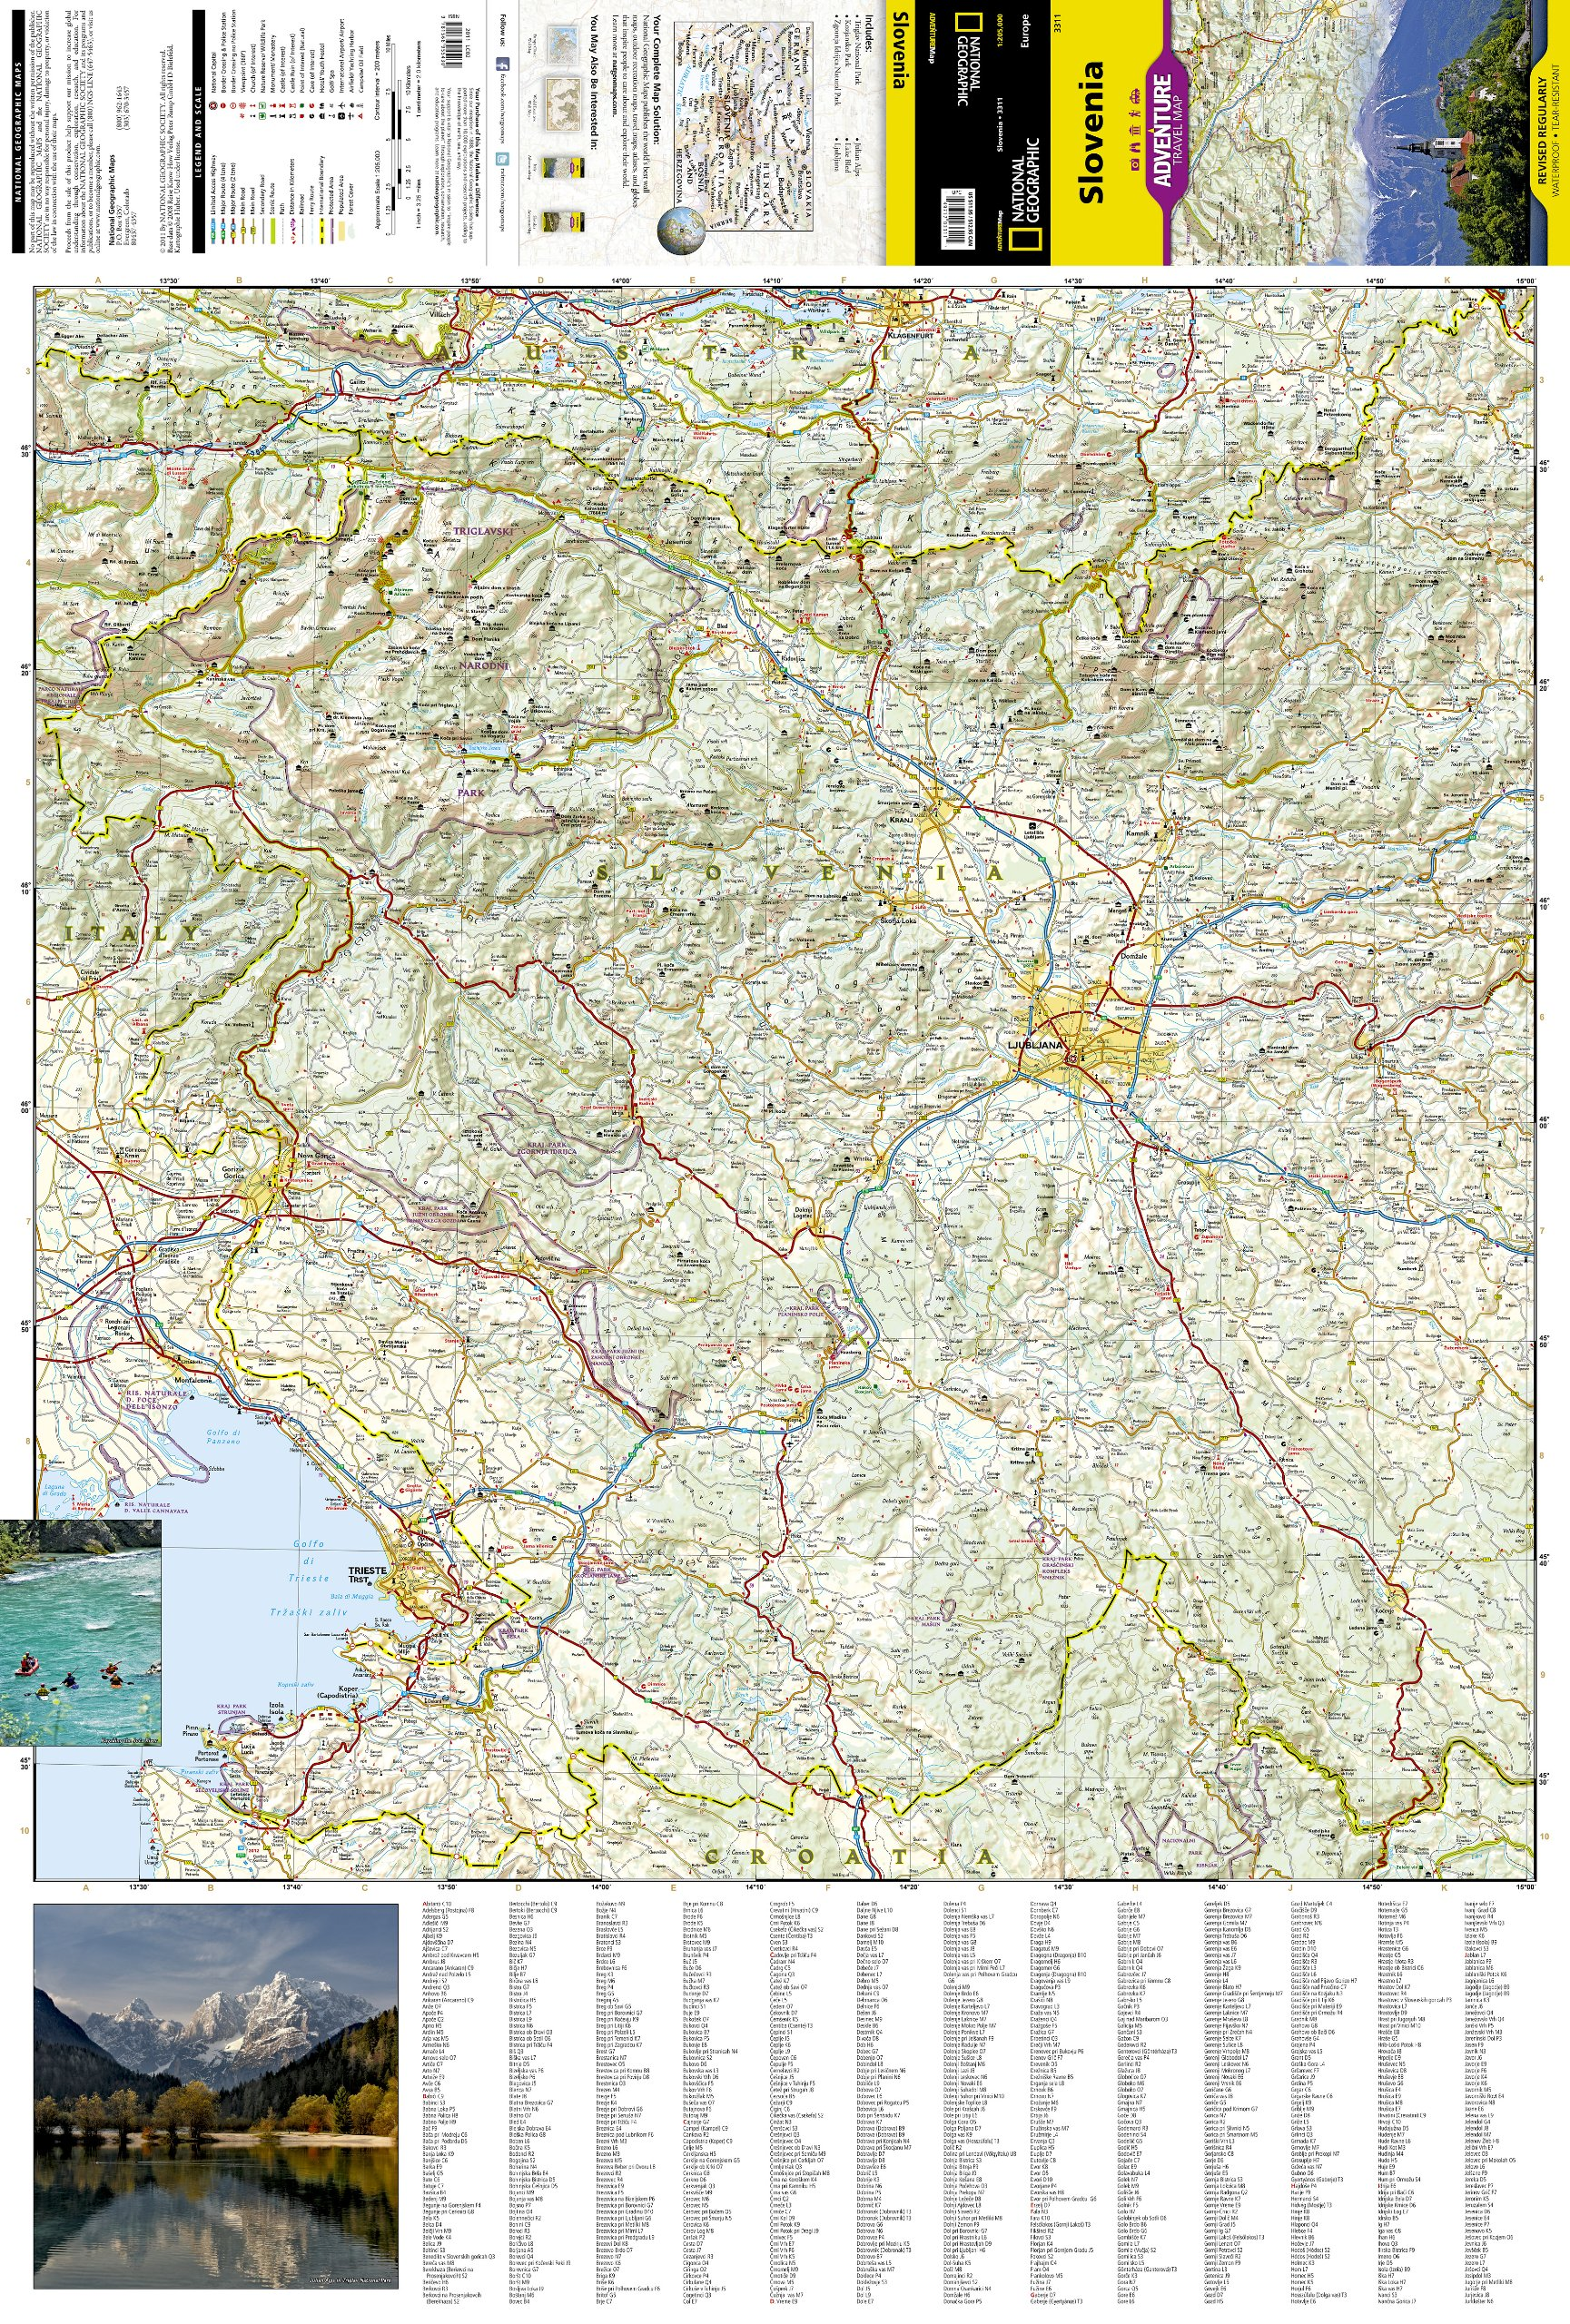 Slovenia National Geographic Adventure Map National Geographic - Slovenia map hd